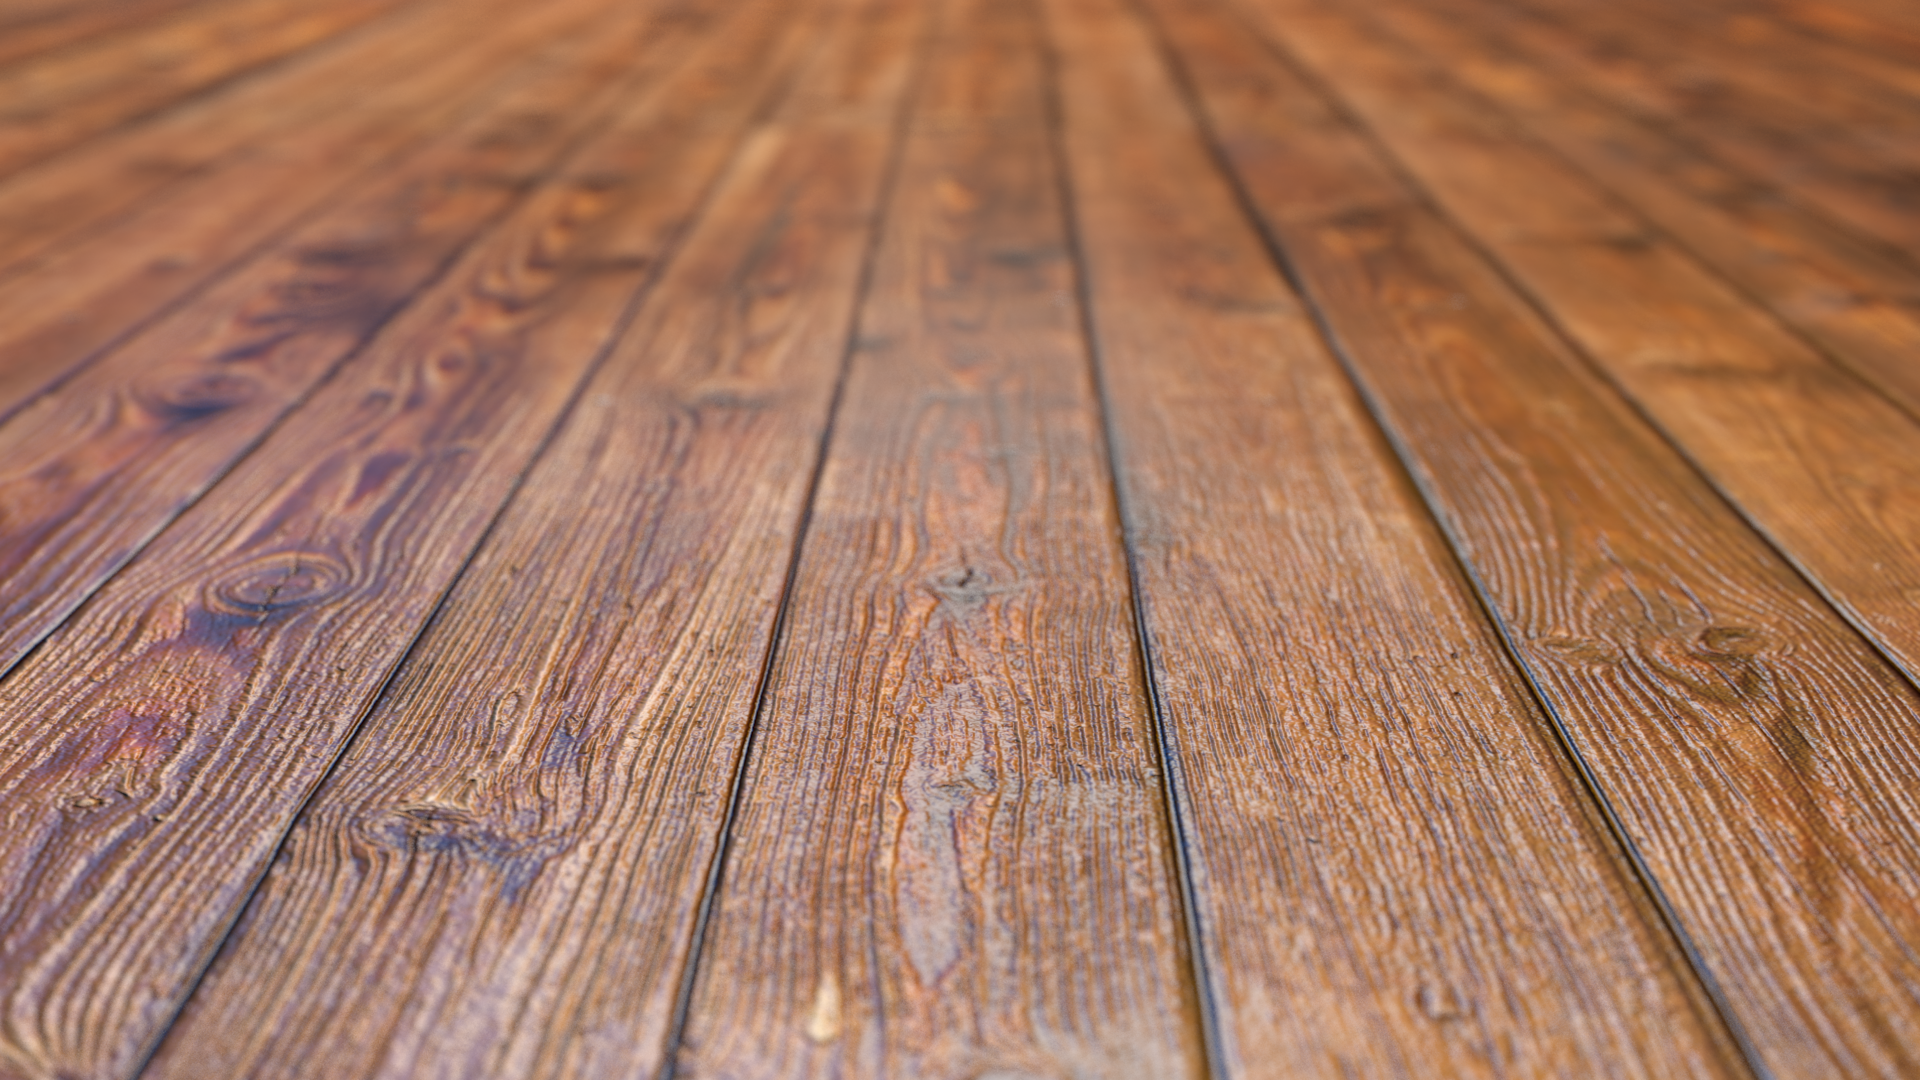 Wood Planks C4D by KceenSRB on DeviantArt